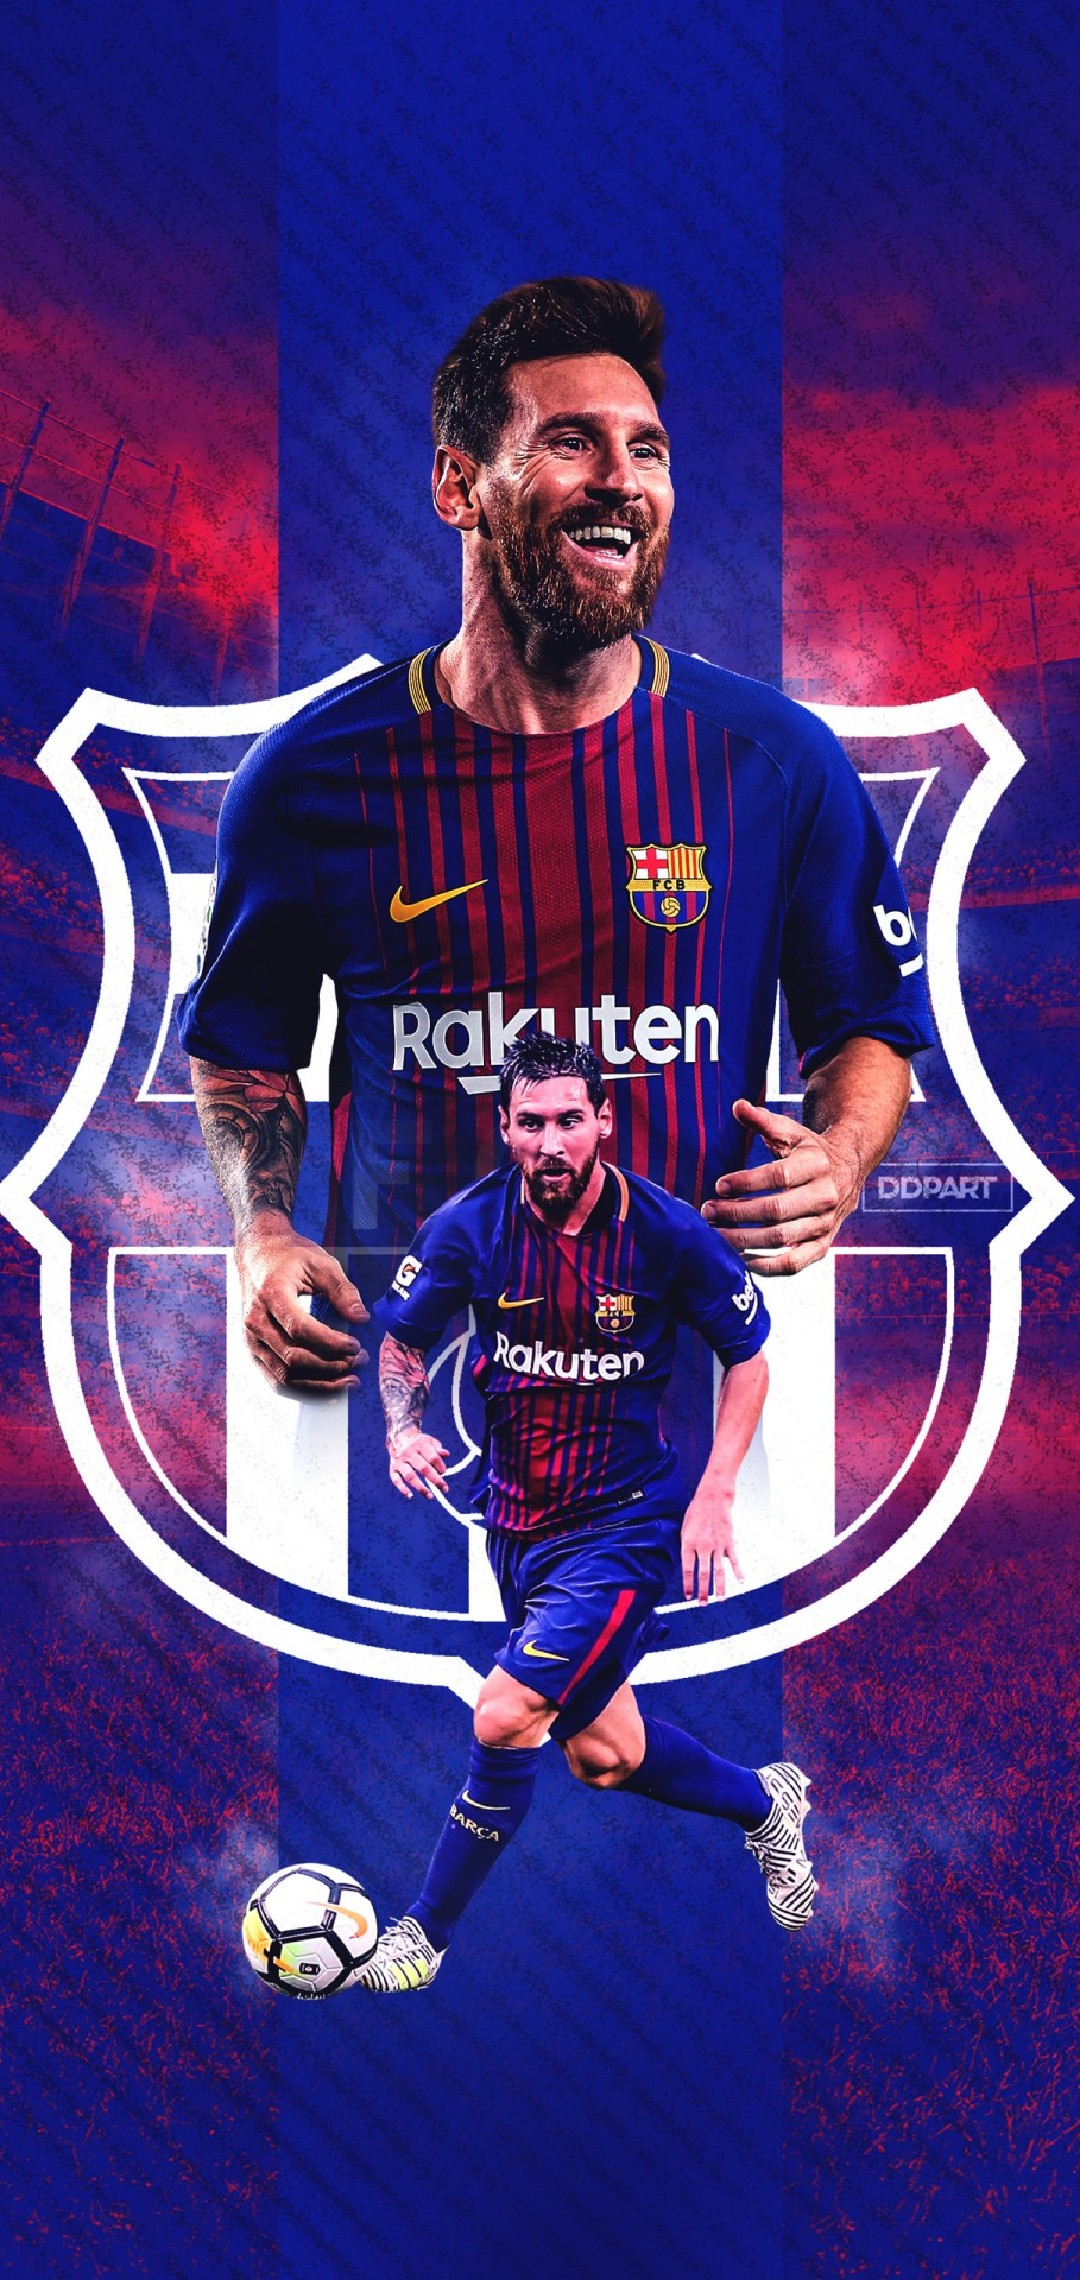 Lionel Messi Wallpapers For Iphone - Lionel Messi Wallpaper Iphone , HD Wallpaper & Backgrounds